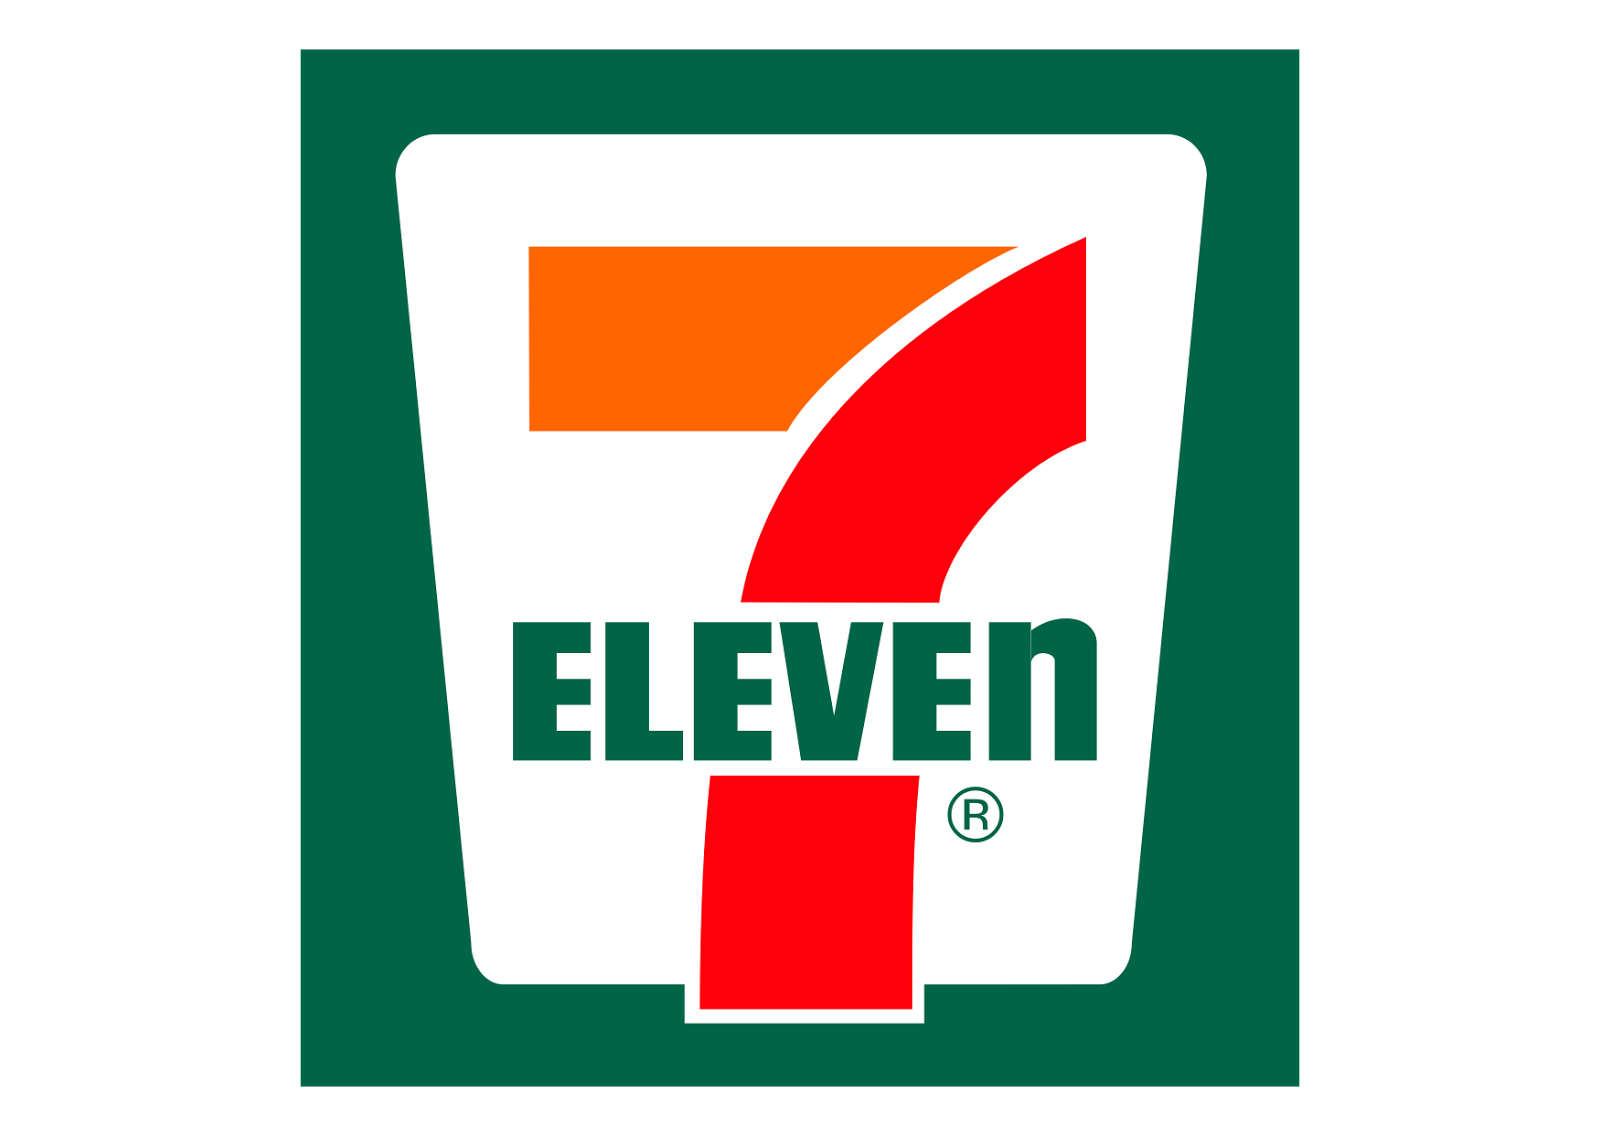 7 eleven logo vector vector logo download pinterest logos rh pinterest com state farm logo vector art state farm logo vector art